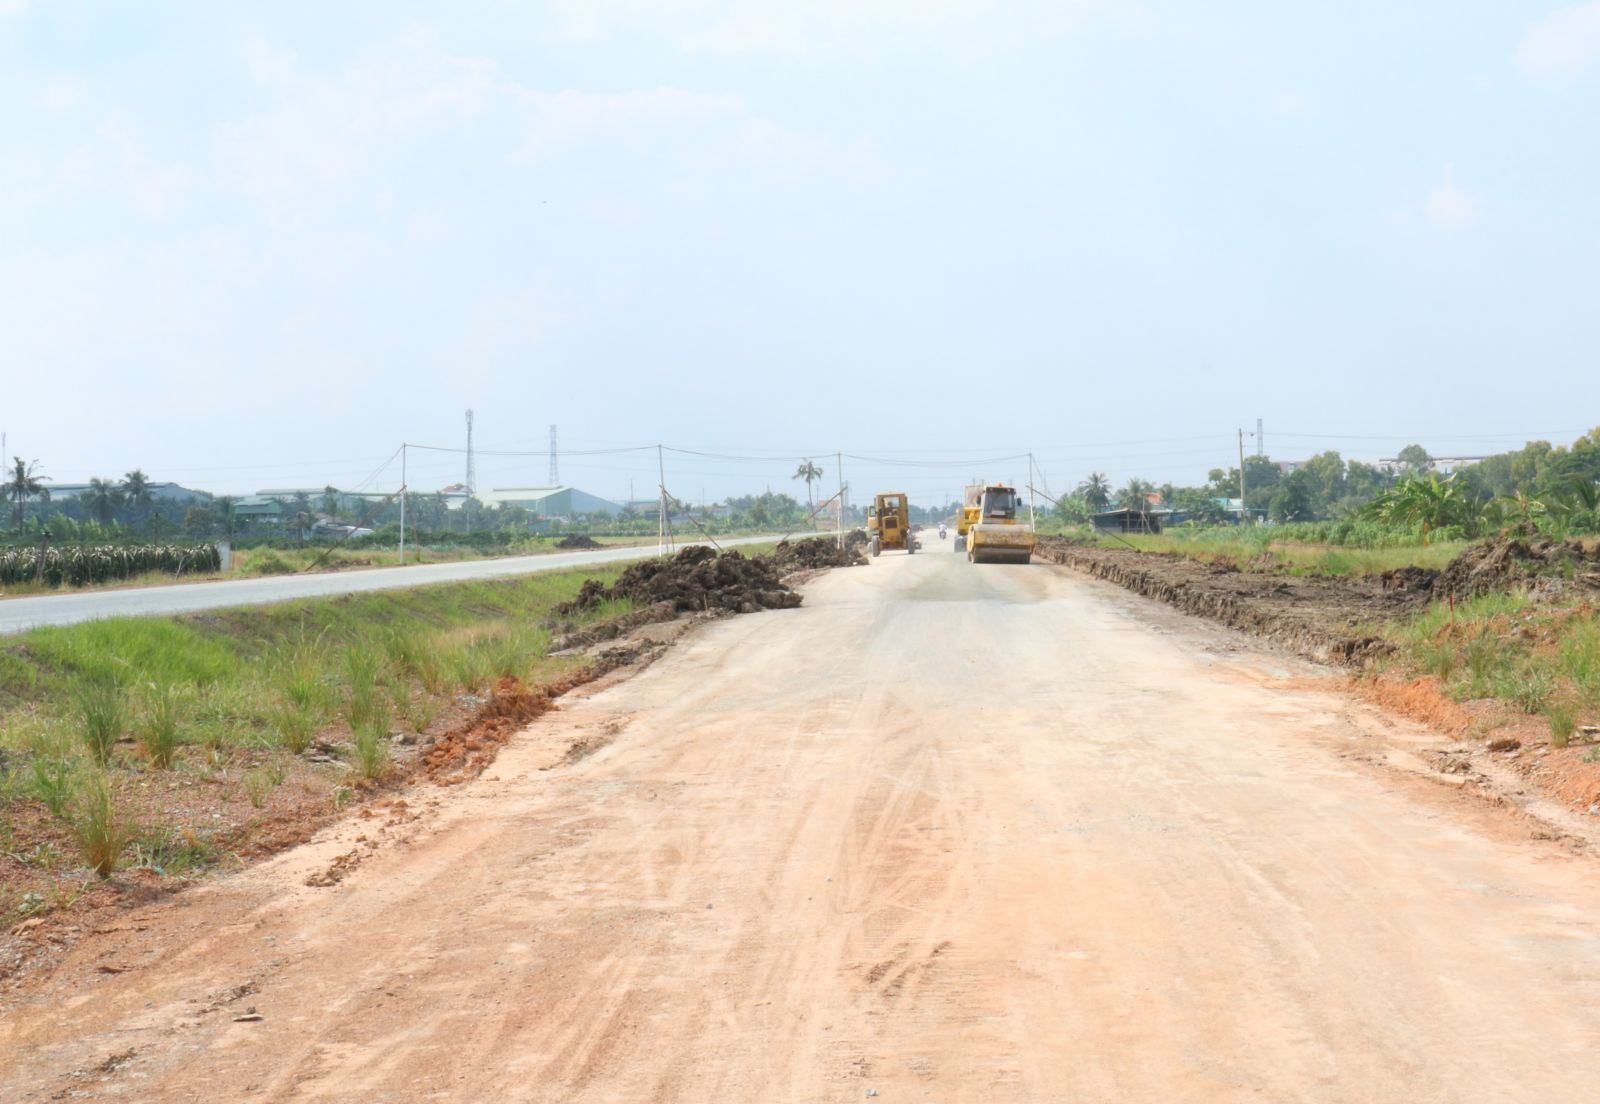 Land inventory helps to facilitate the implementation of project and works